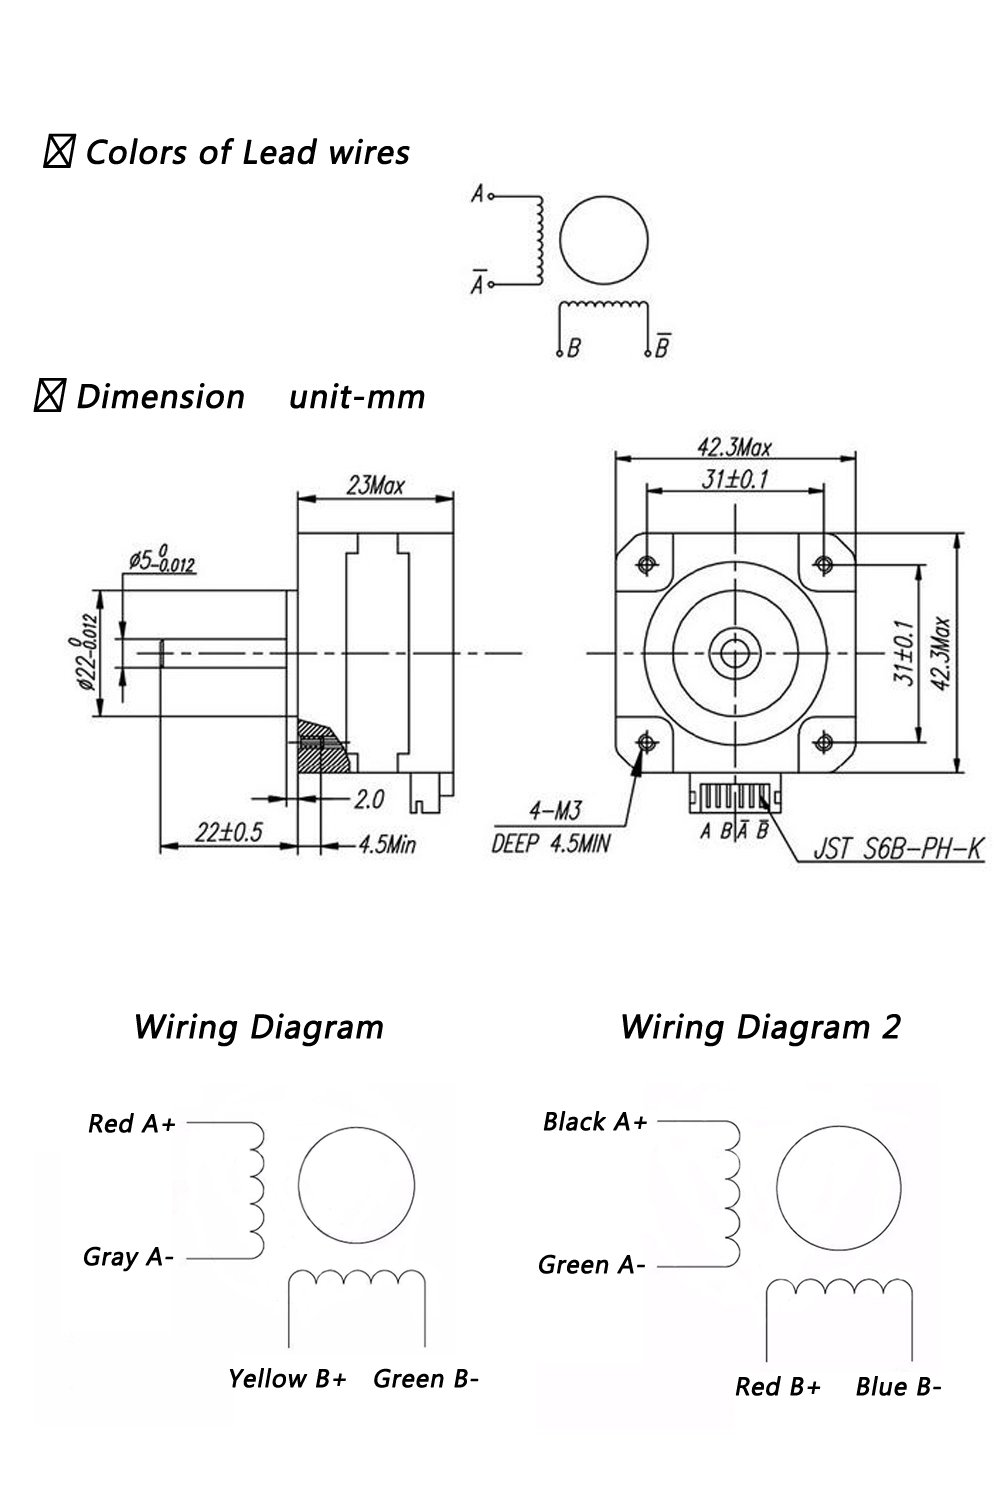 How To Wire Dorman 84944 Wiring Diagrams Wiring Diagram - Wiring Diagram